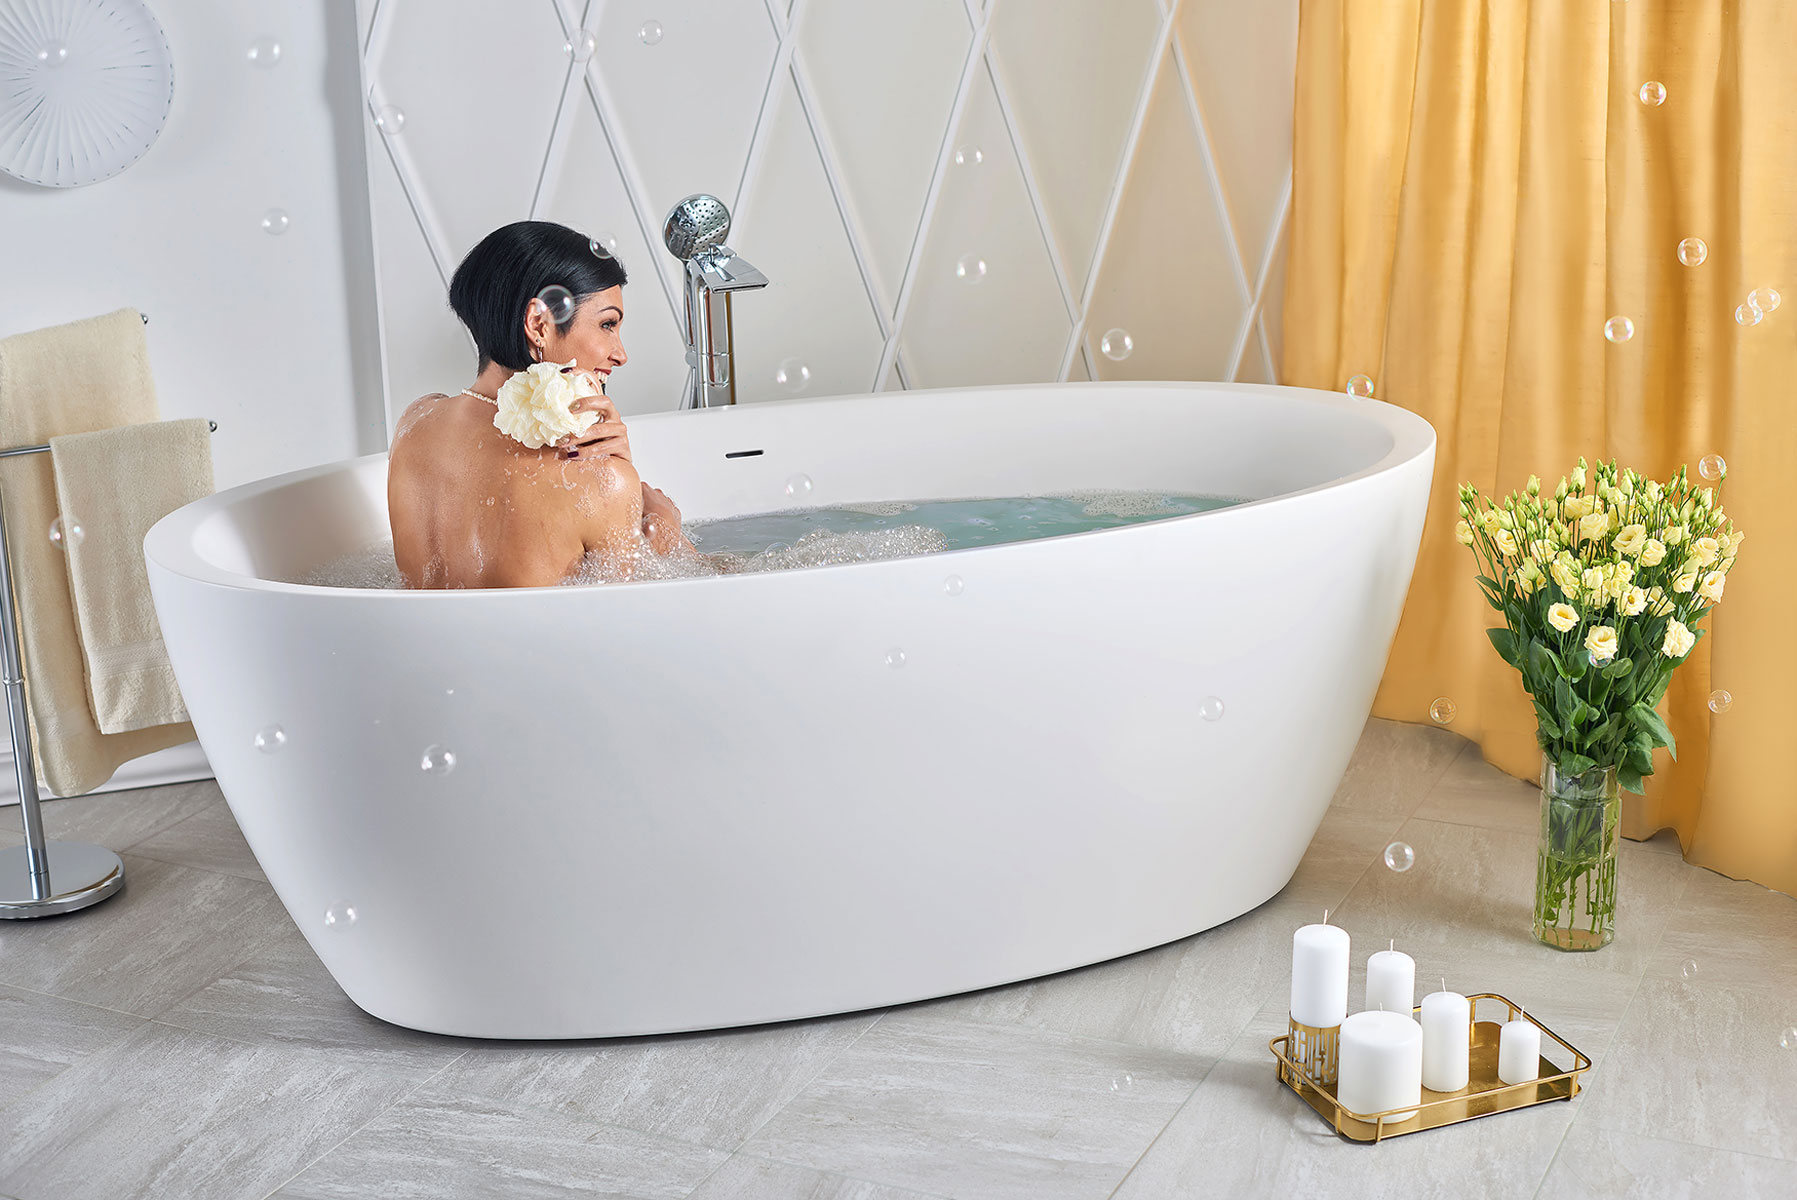 Gentil Aquatica Reveals 4 Secrets To Keeping Your Bathtub Squeaky Clean,  Especially Freestanding Bathtubs That Need Cleaning